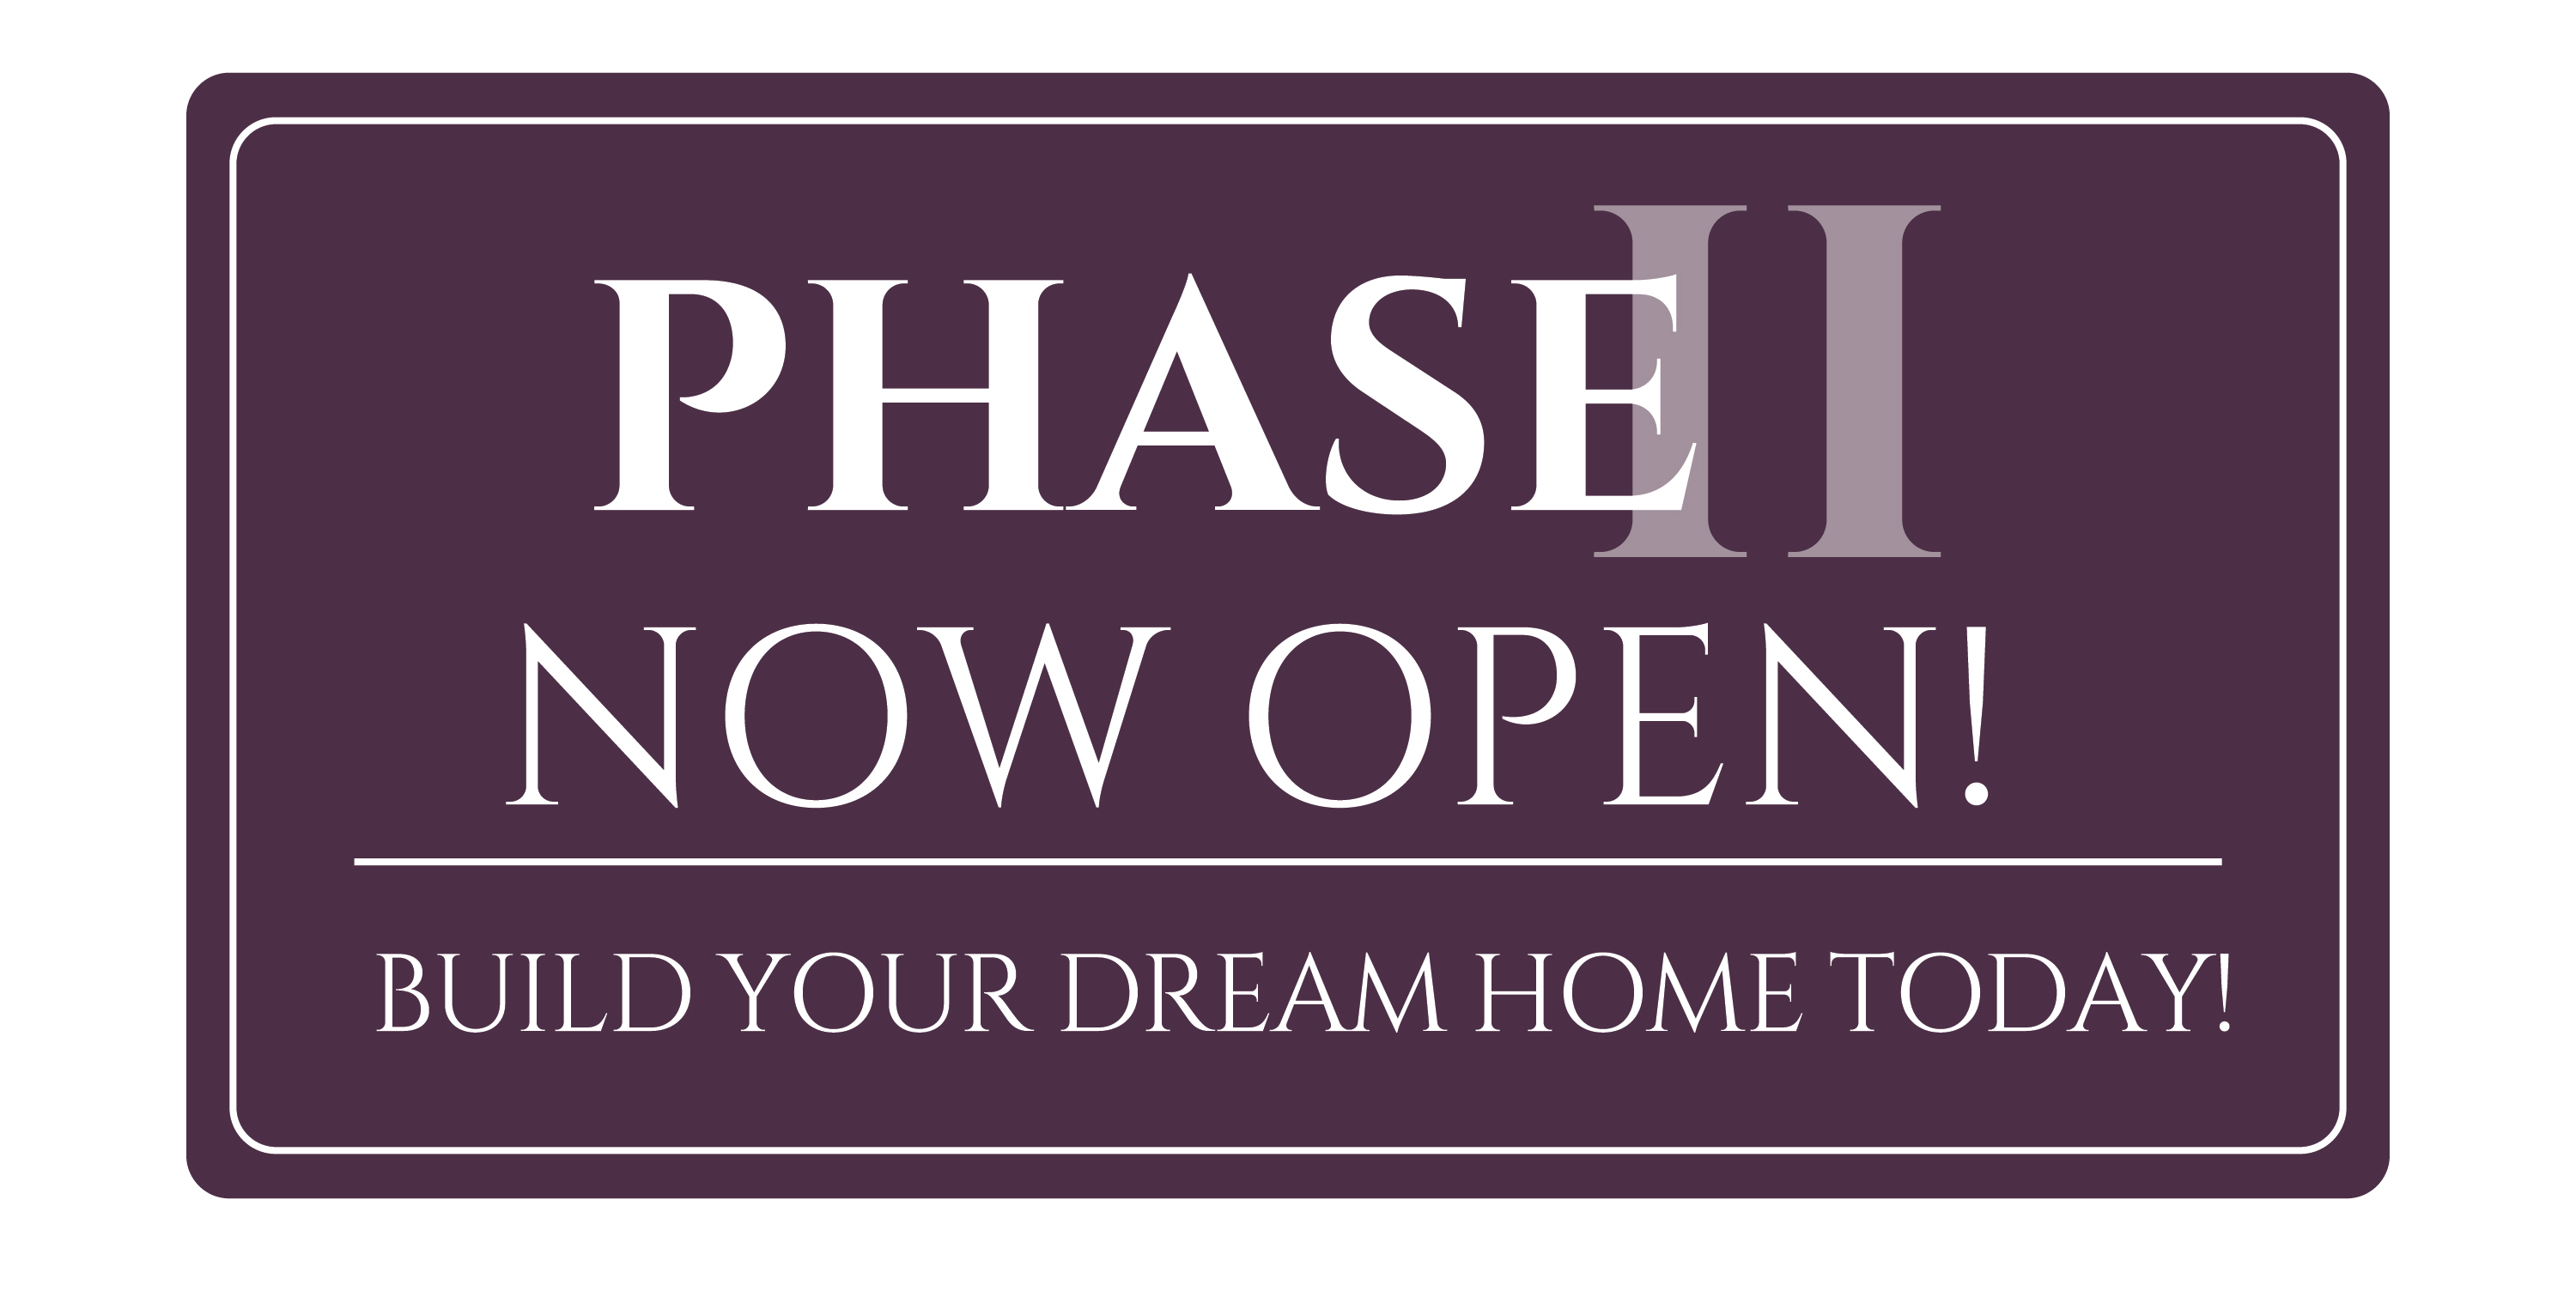 Phase two is now open in Bridle Creek. Build your custom, Design Home today!